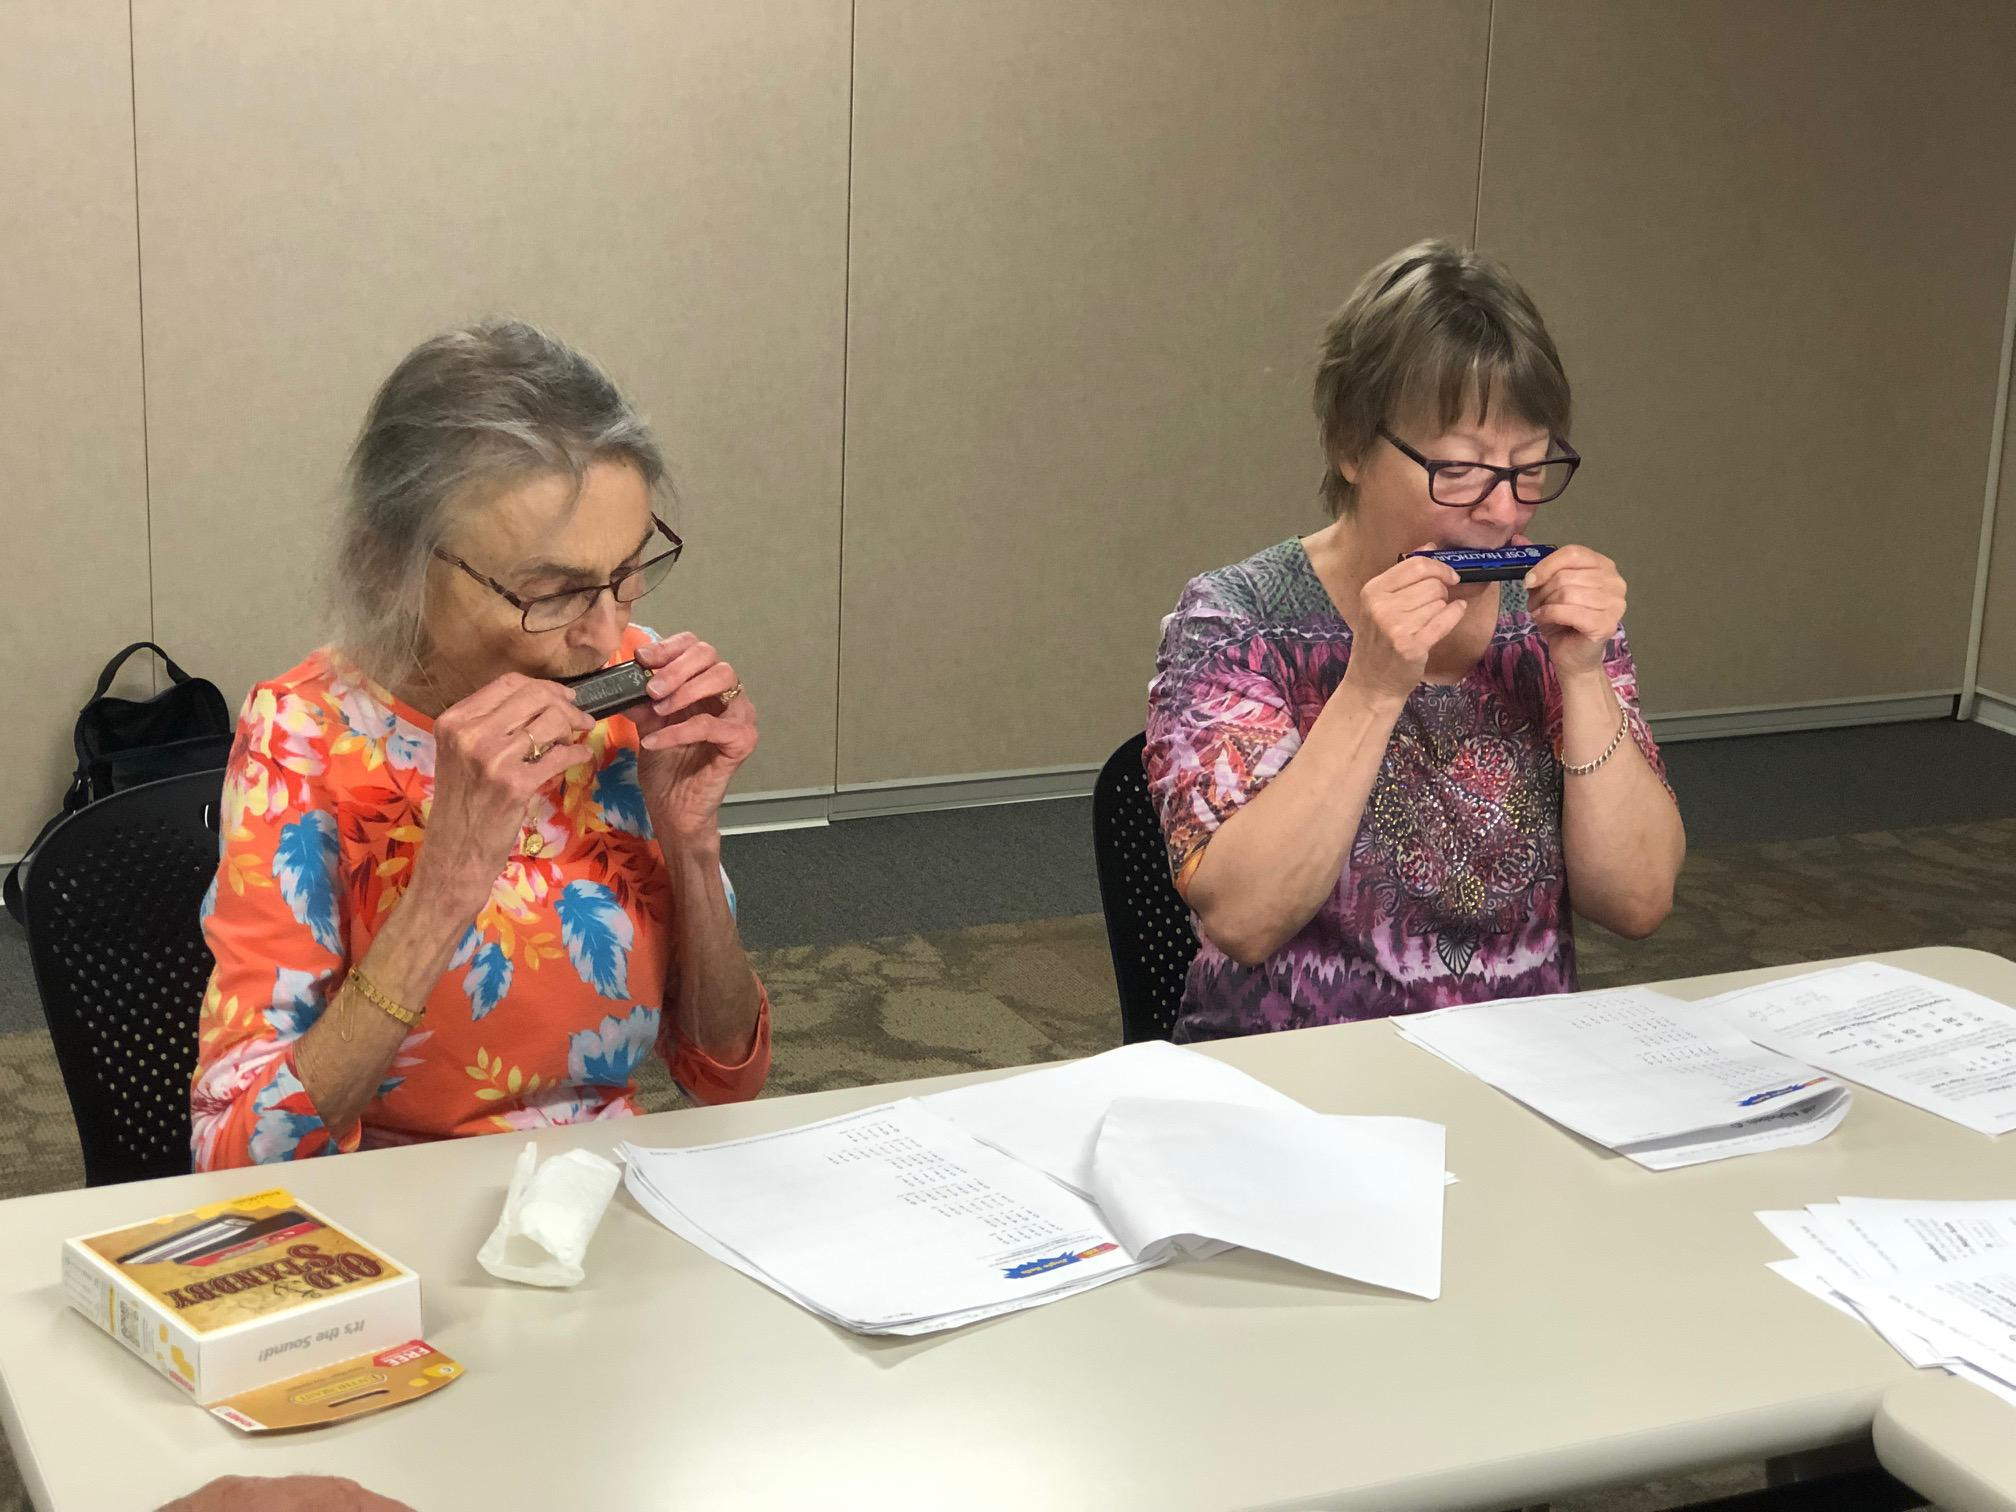 Lynn Scott of Bloomington (left) says she enjoys being with others who have breathing problems. Mary Jo Bragg of Lexington (right) attended her second session. (photos courtesy of OSF St. Joseph Medical Center)